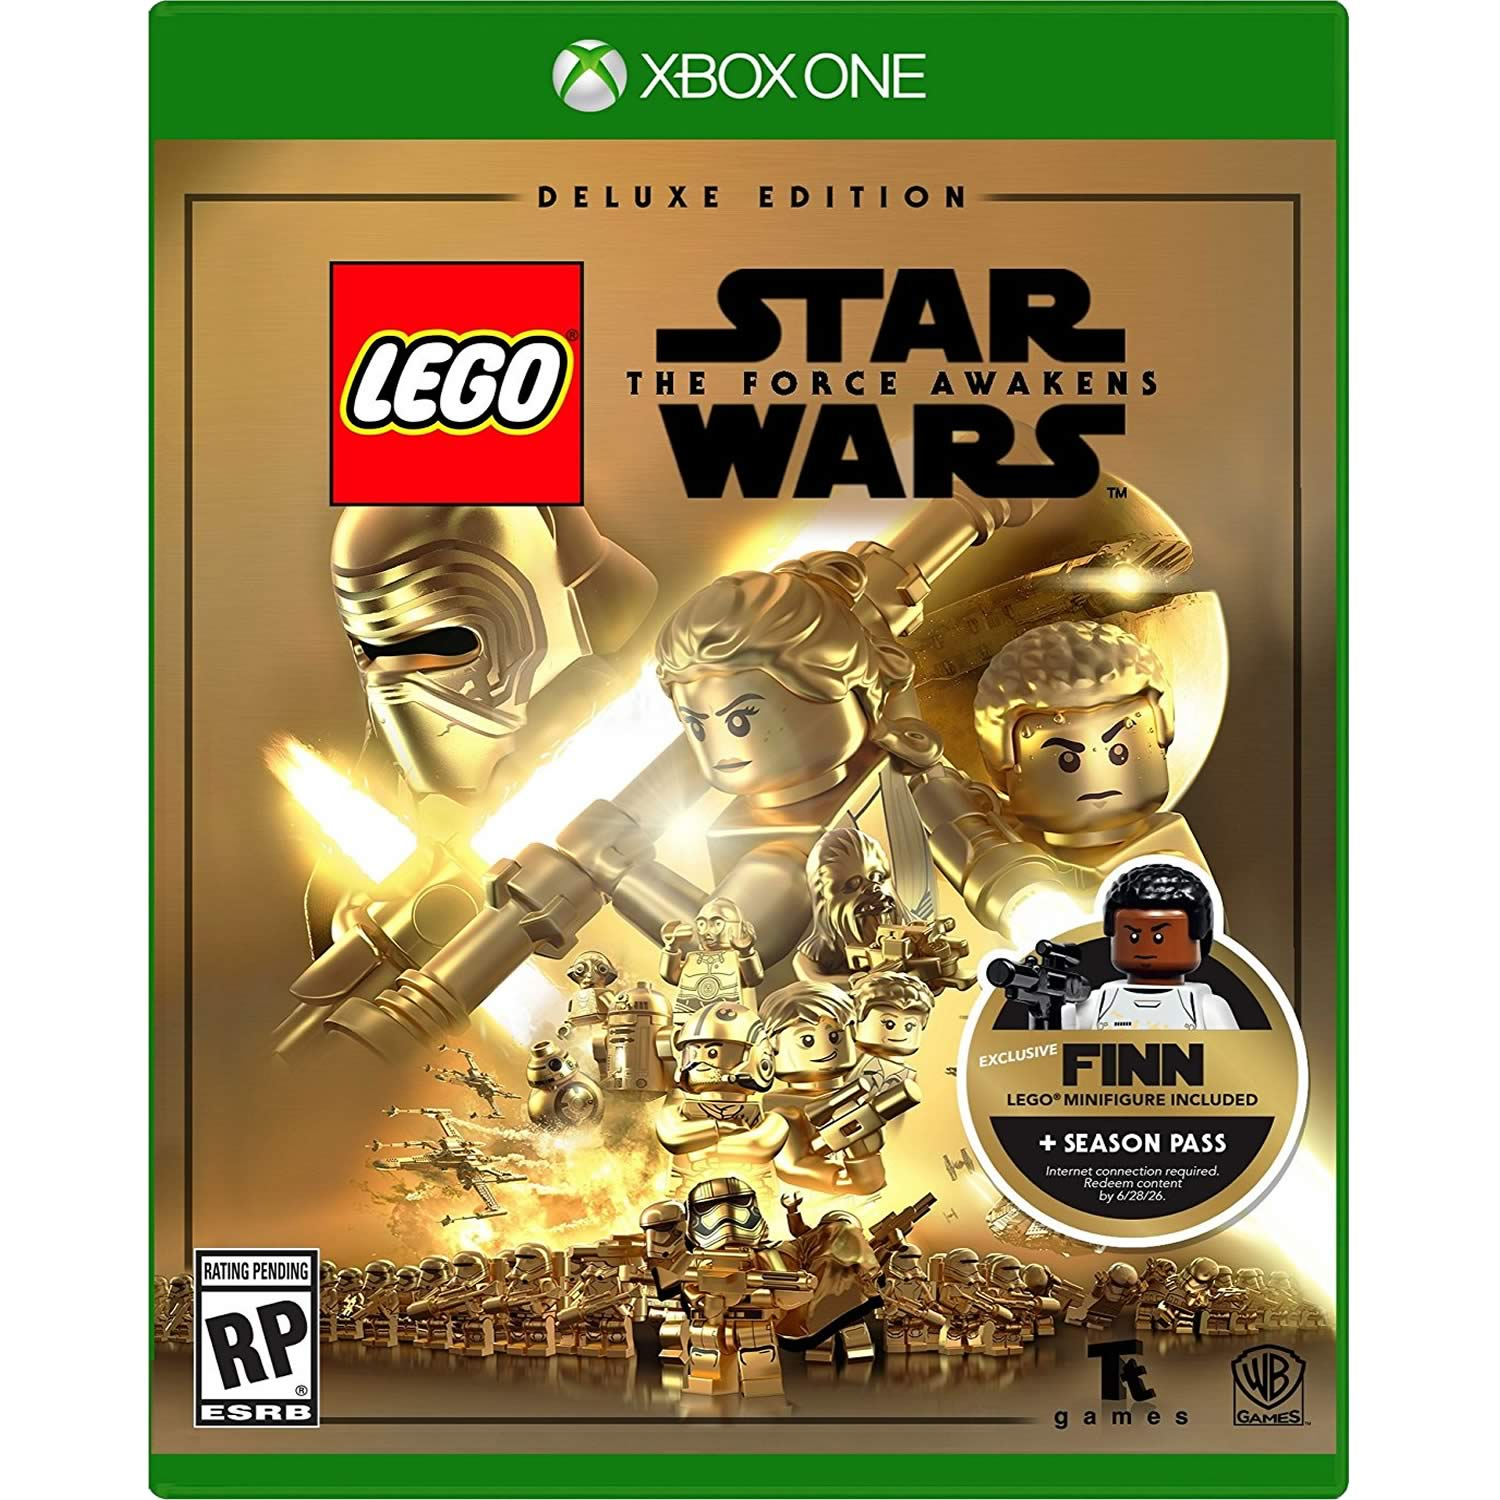 LEGO STAR WARS: THE FORCE AWAKENS - Deluxe Edition (XBOX ONE)